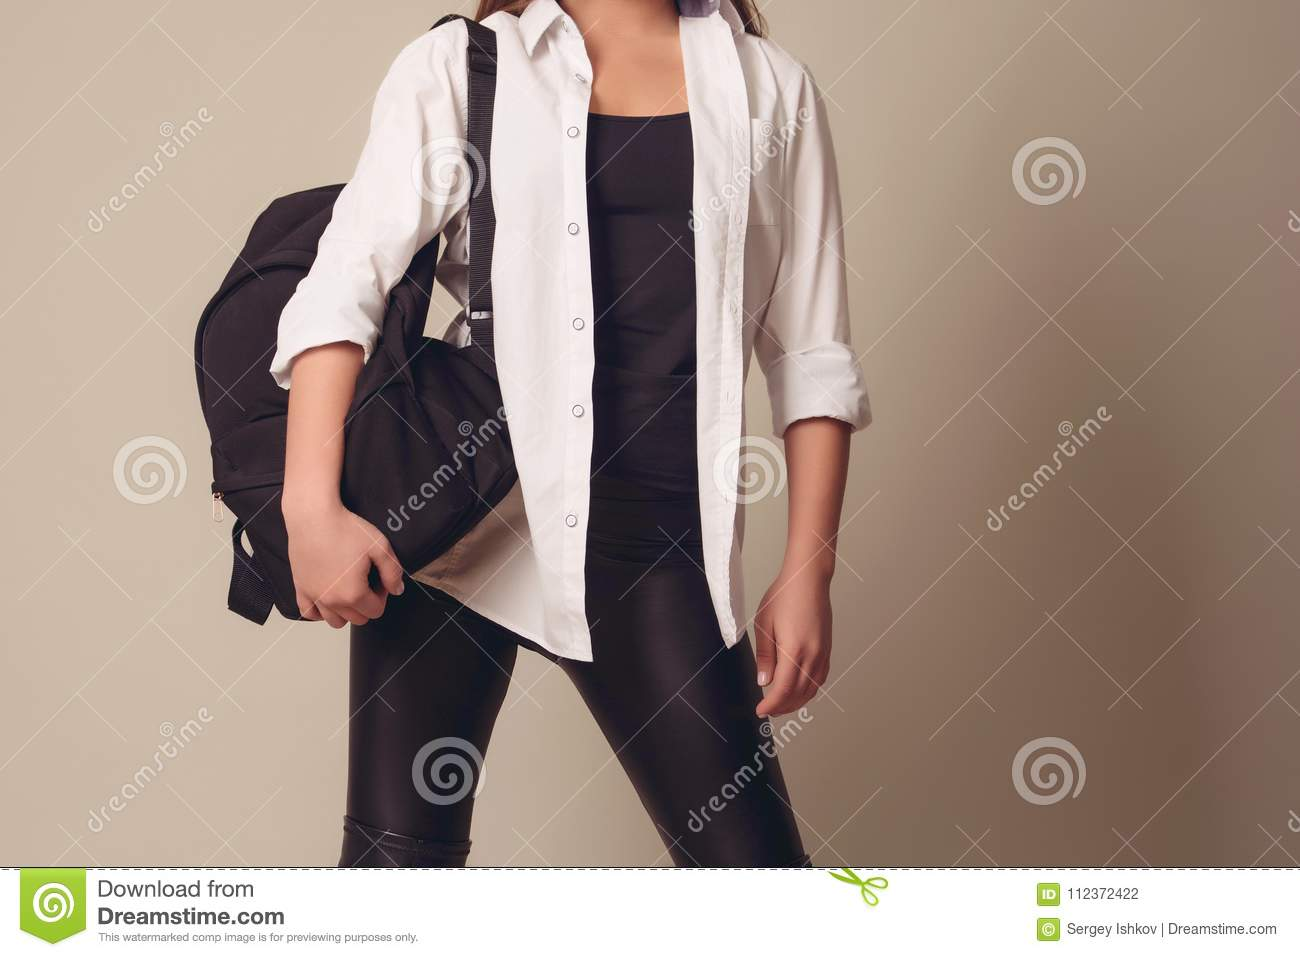 Beautiful blonde girl wearing a white shirt with a leather backpack on her back